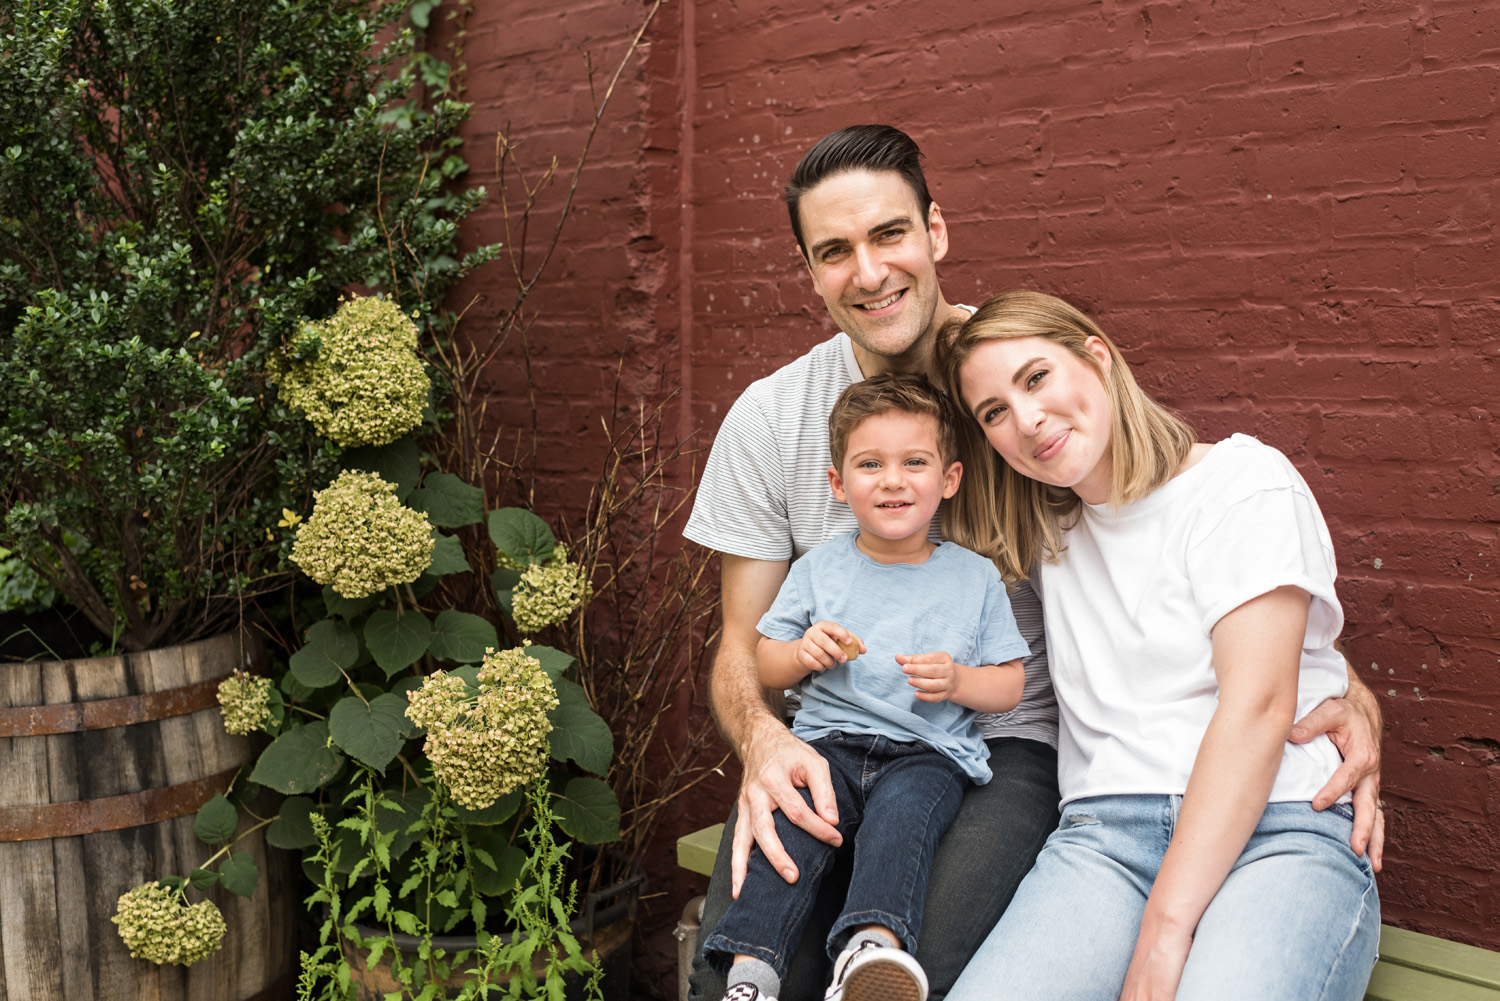 Red Hook Brooklyn Family Photographer_20190811_043.jpg